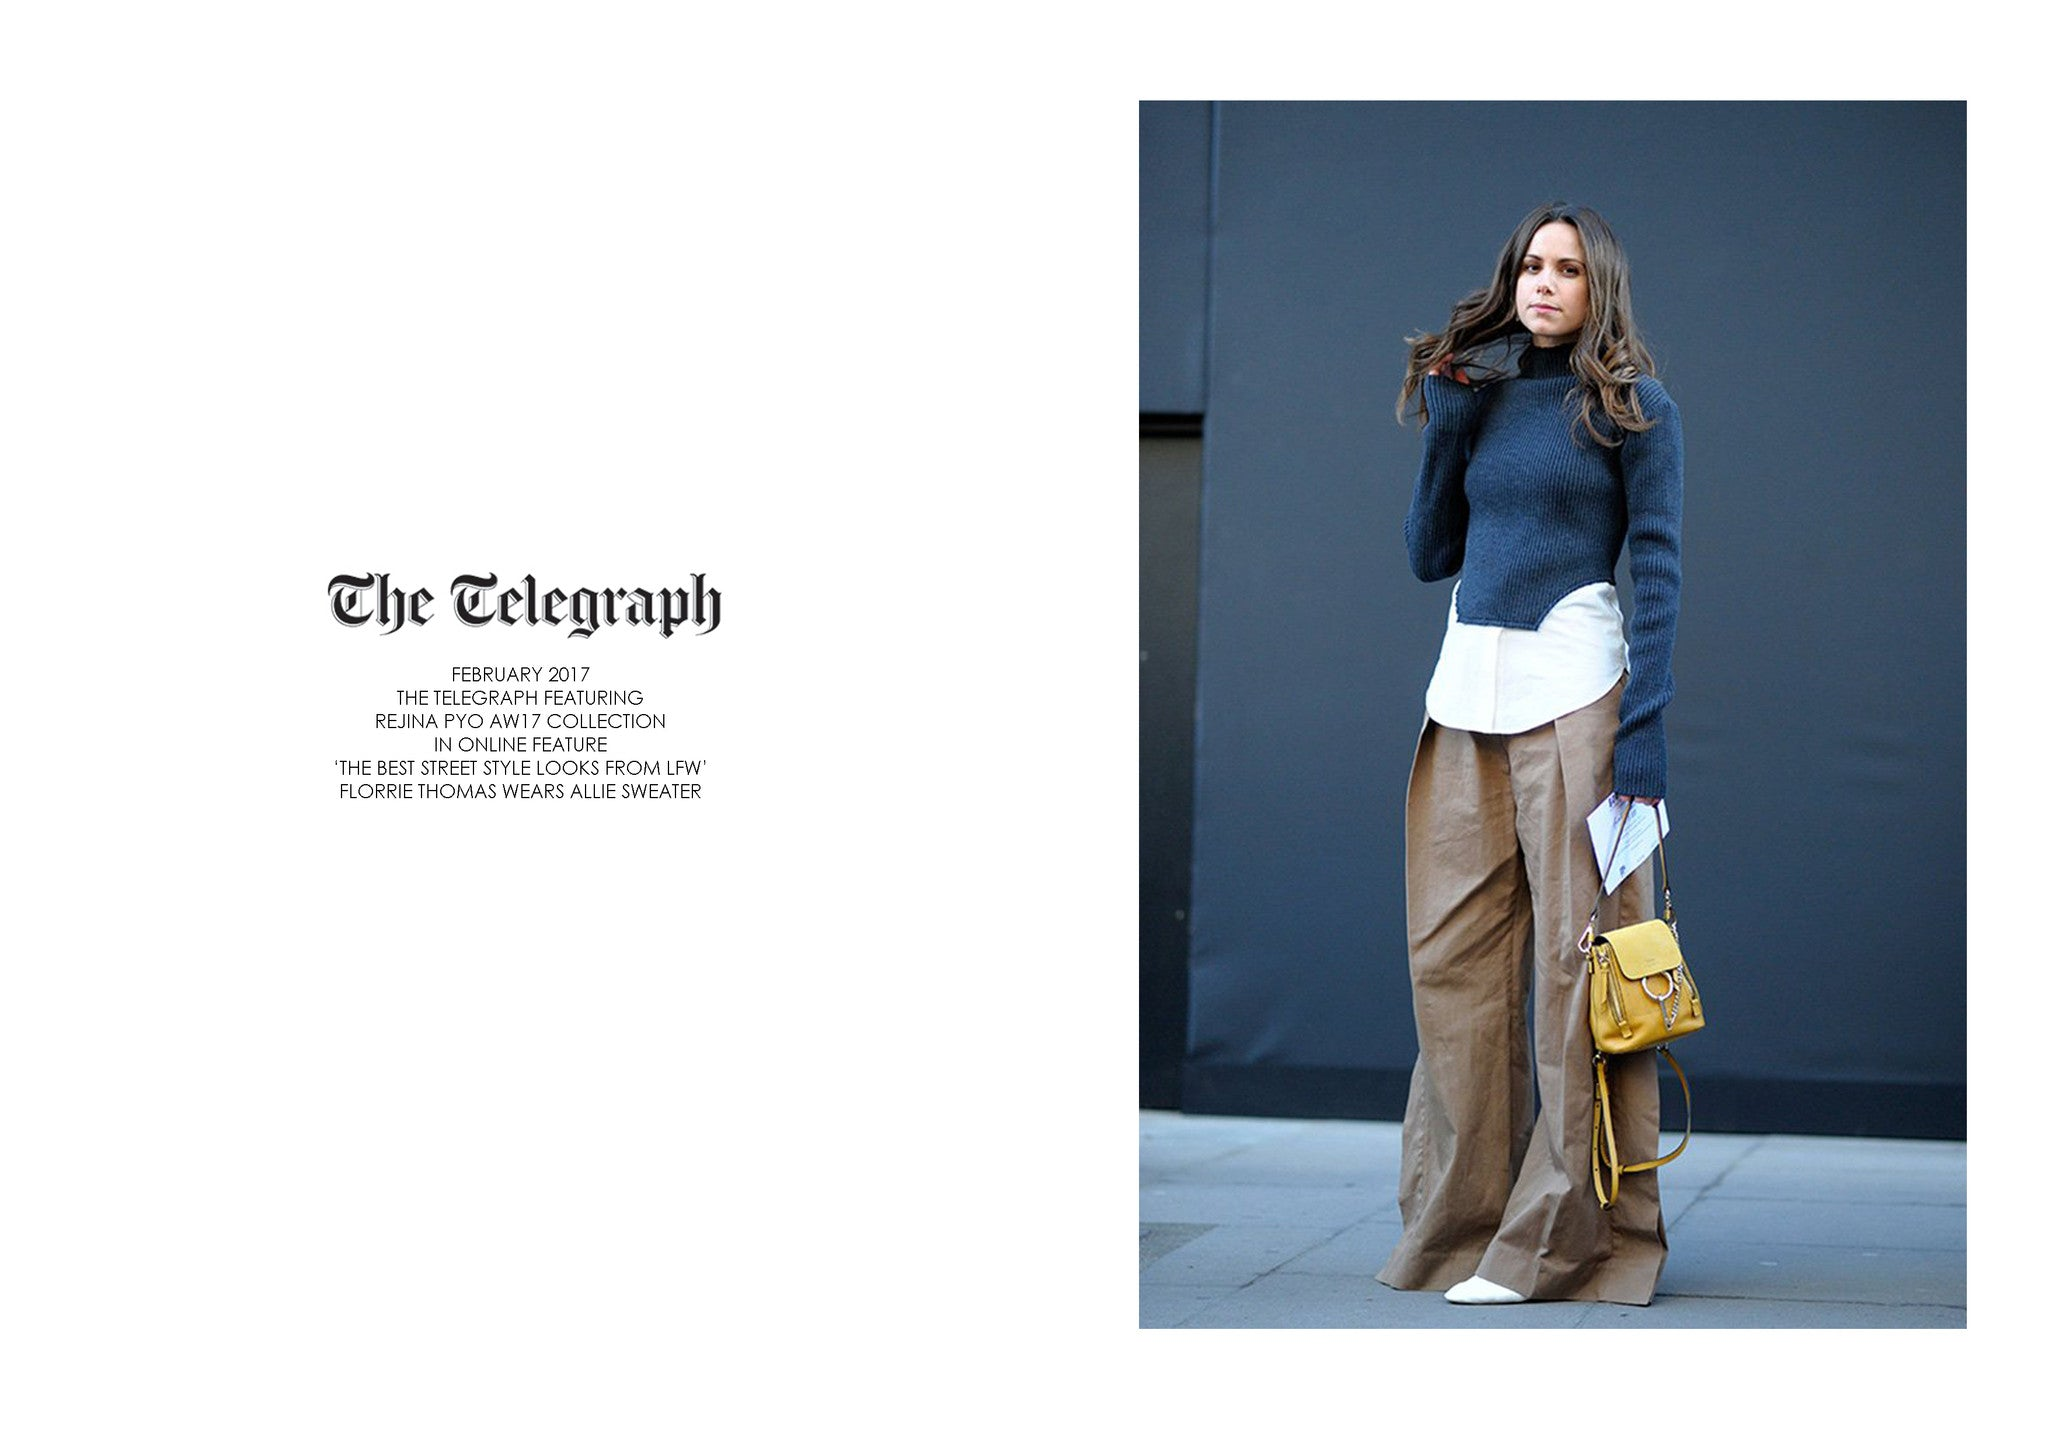 THE TELEGRAPH: FEATURING REJINA PYO AW17 COLLECTION DURING LFW